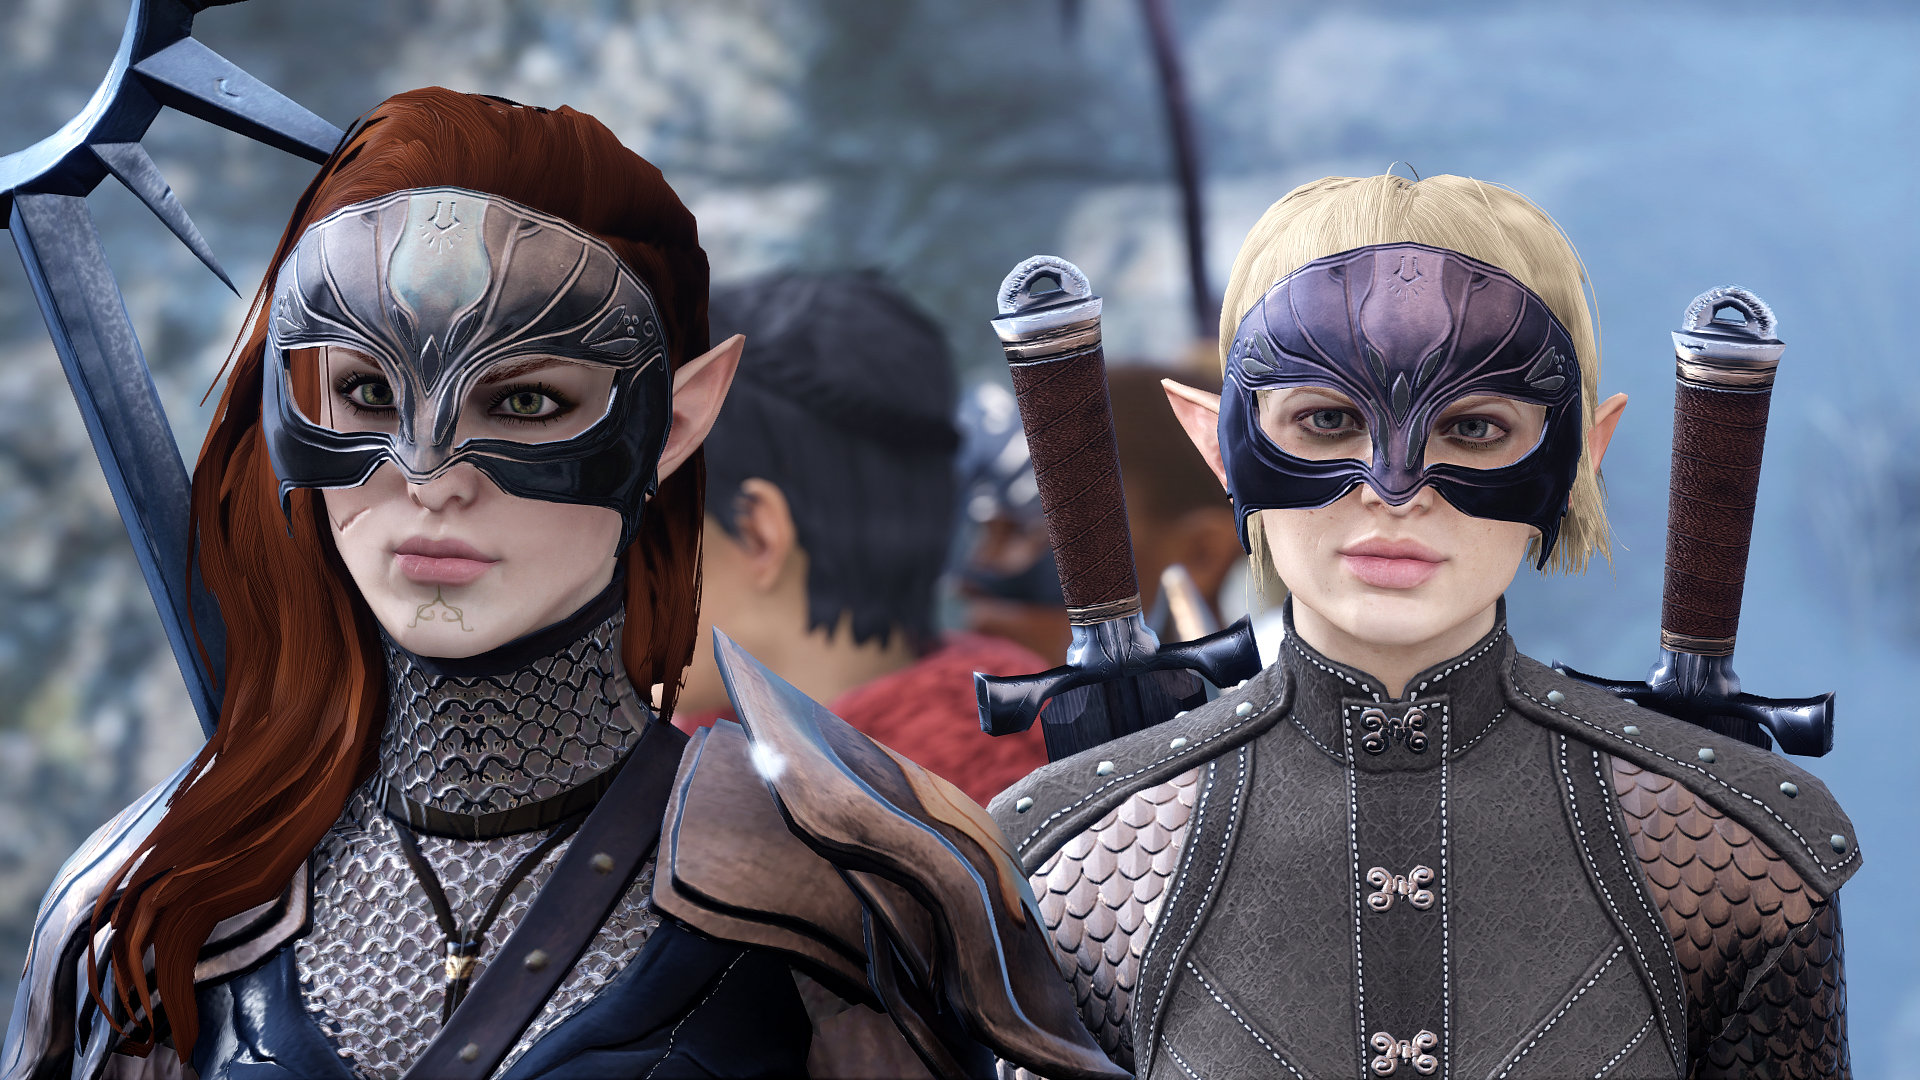 The Mask Shop at Dragon Age: Inquisition Nexus - Mods and community